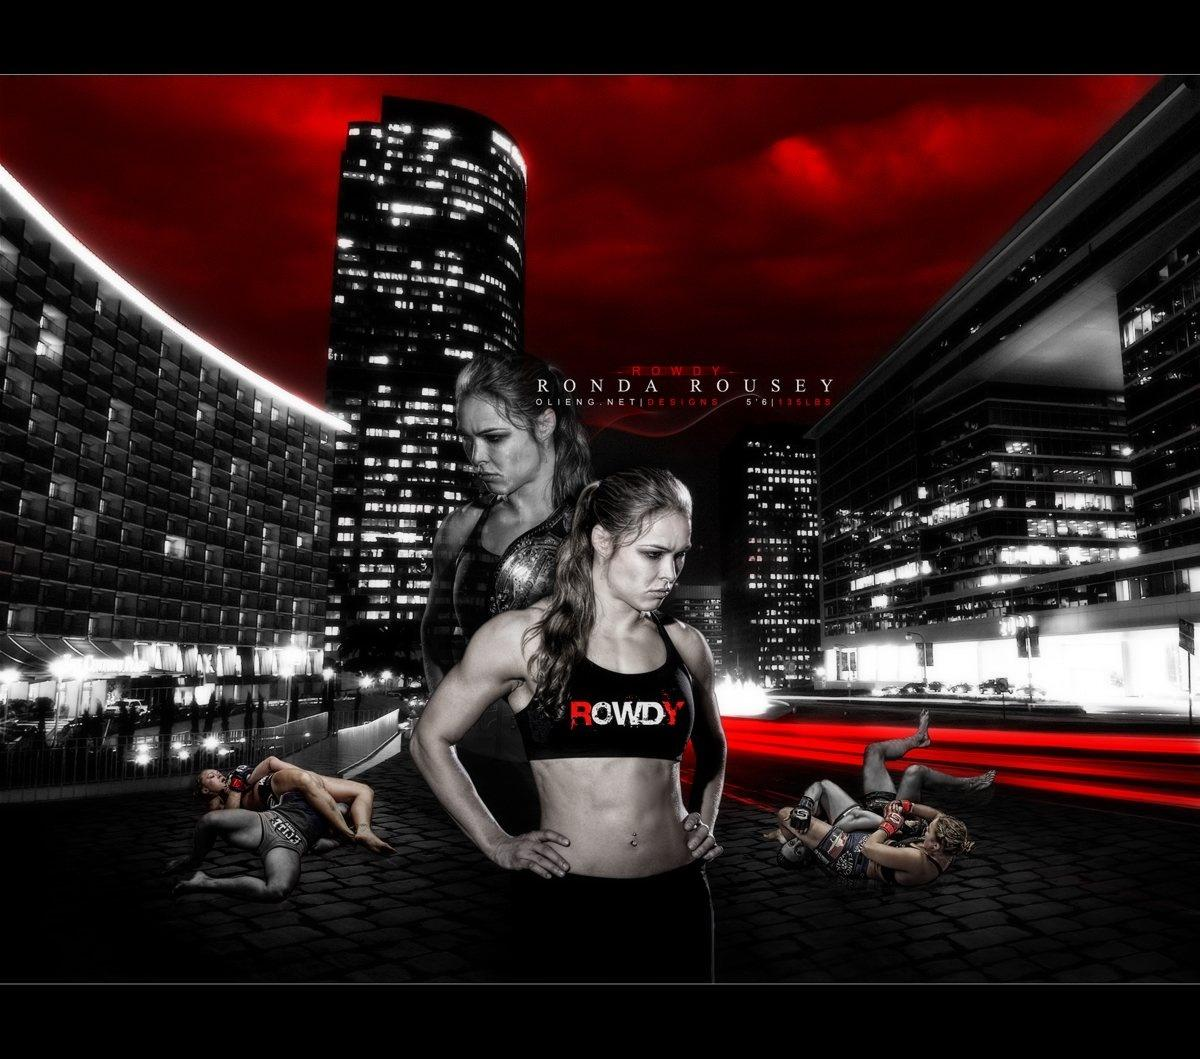 copy pictures from iphone to pc ronda rousey wallpapers desktop nexus wallpapersafari 1067